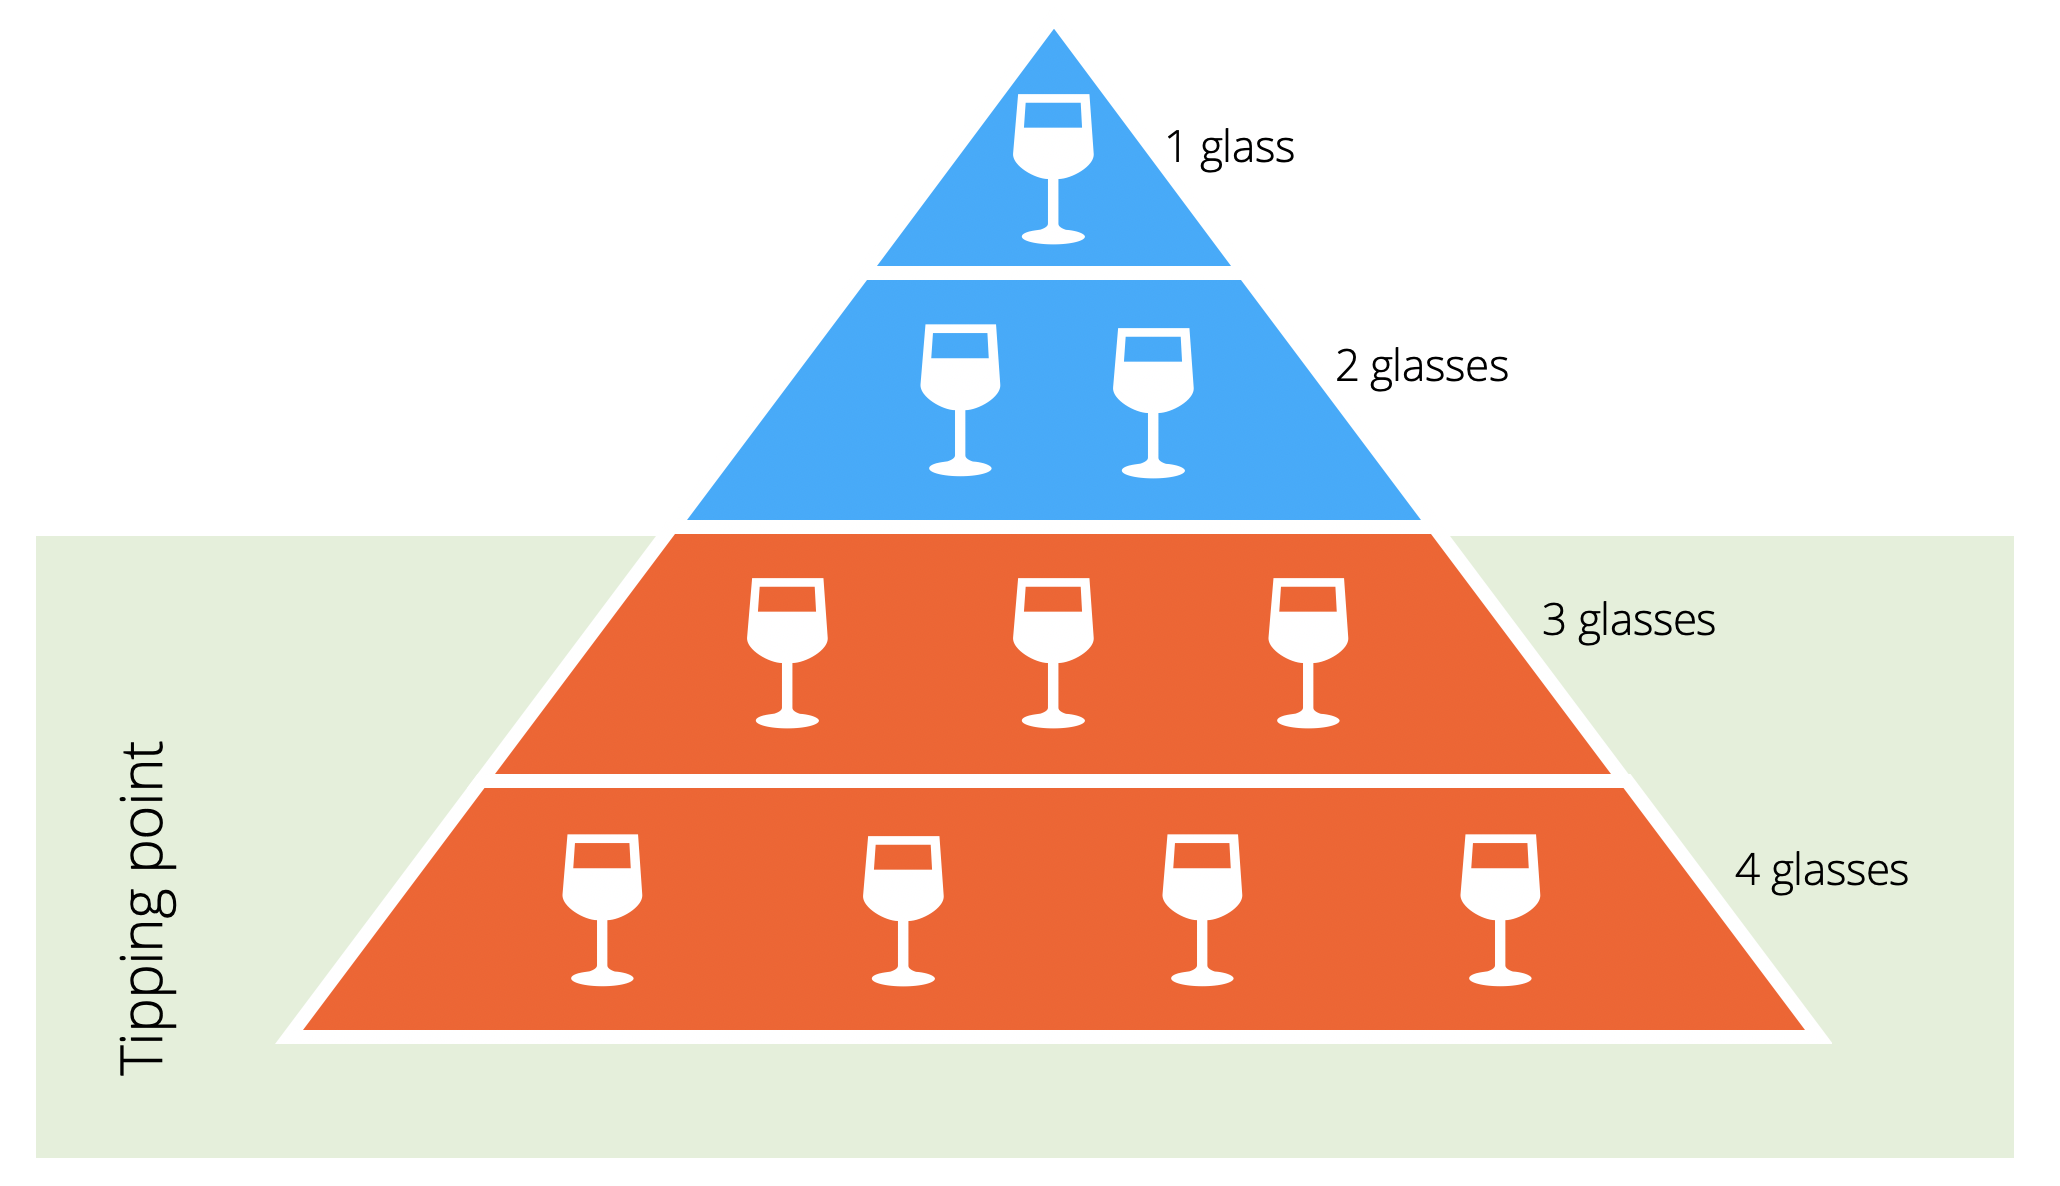 Pyramid diagram illustrating the average tipping point of 3-4 alcoholic drinks.